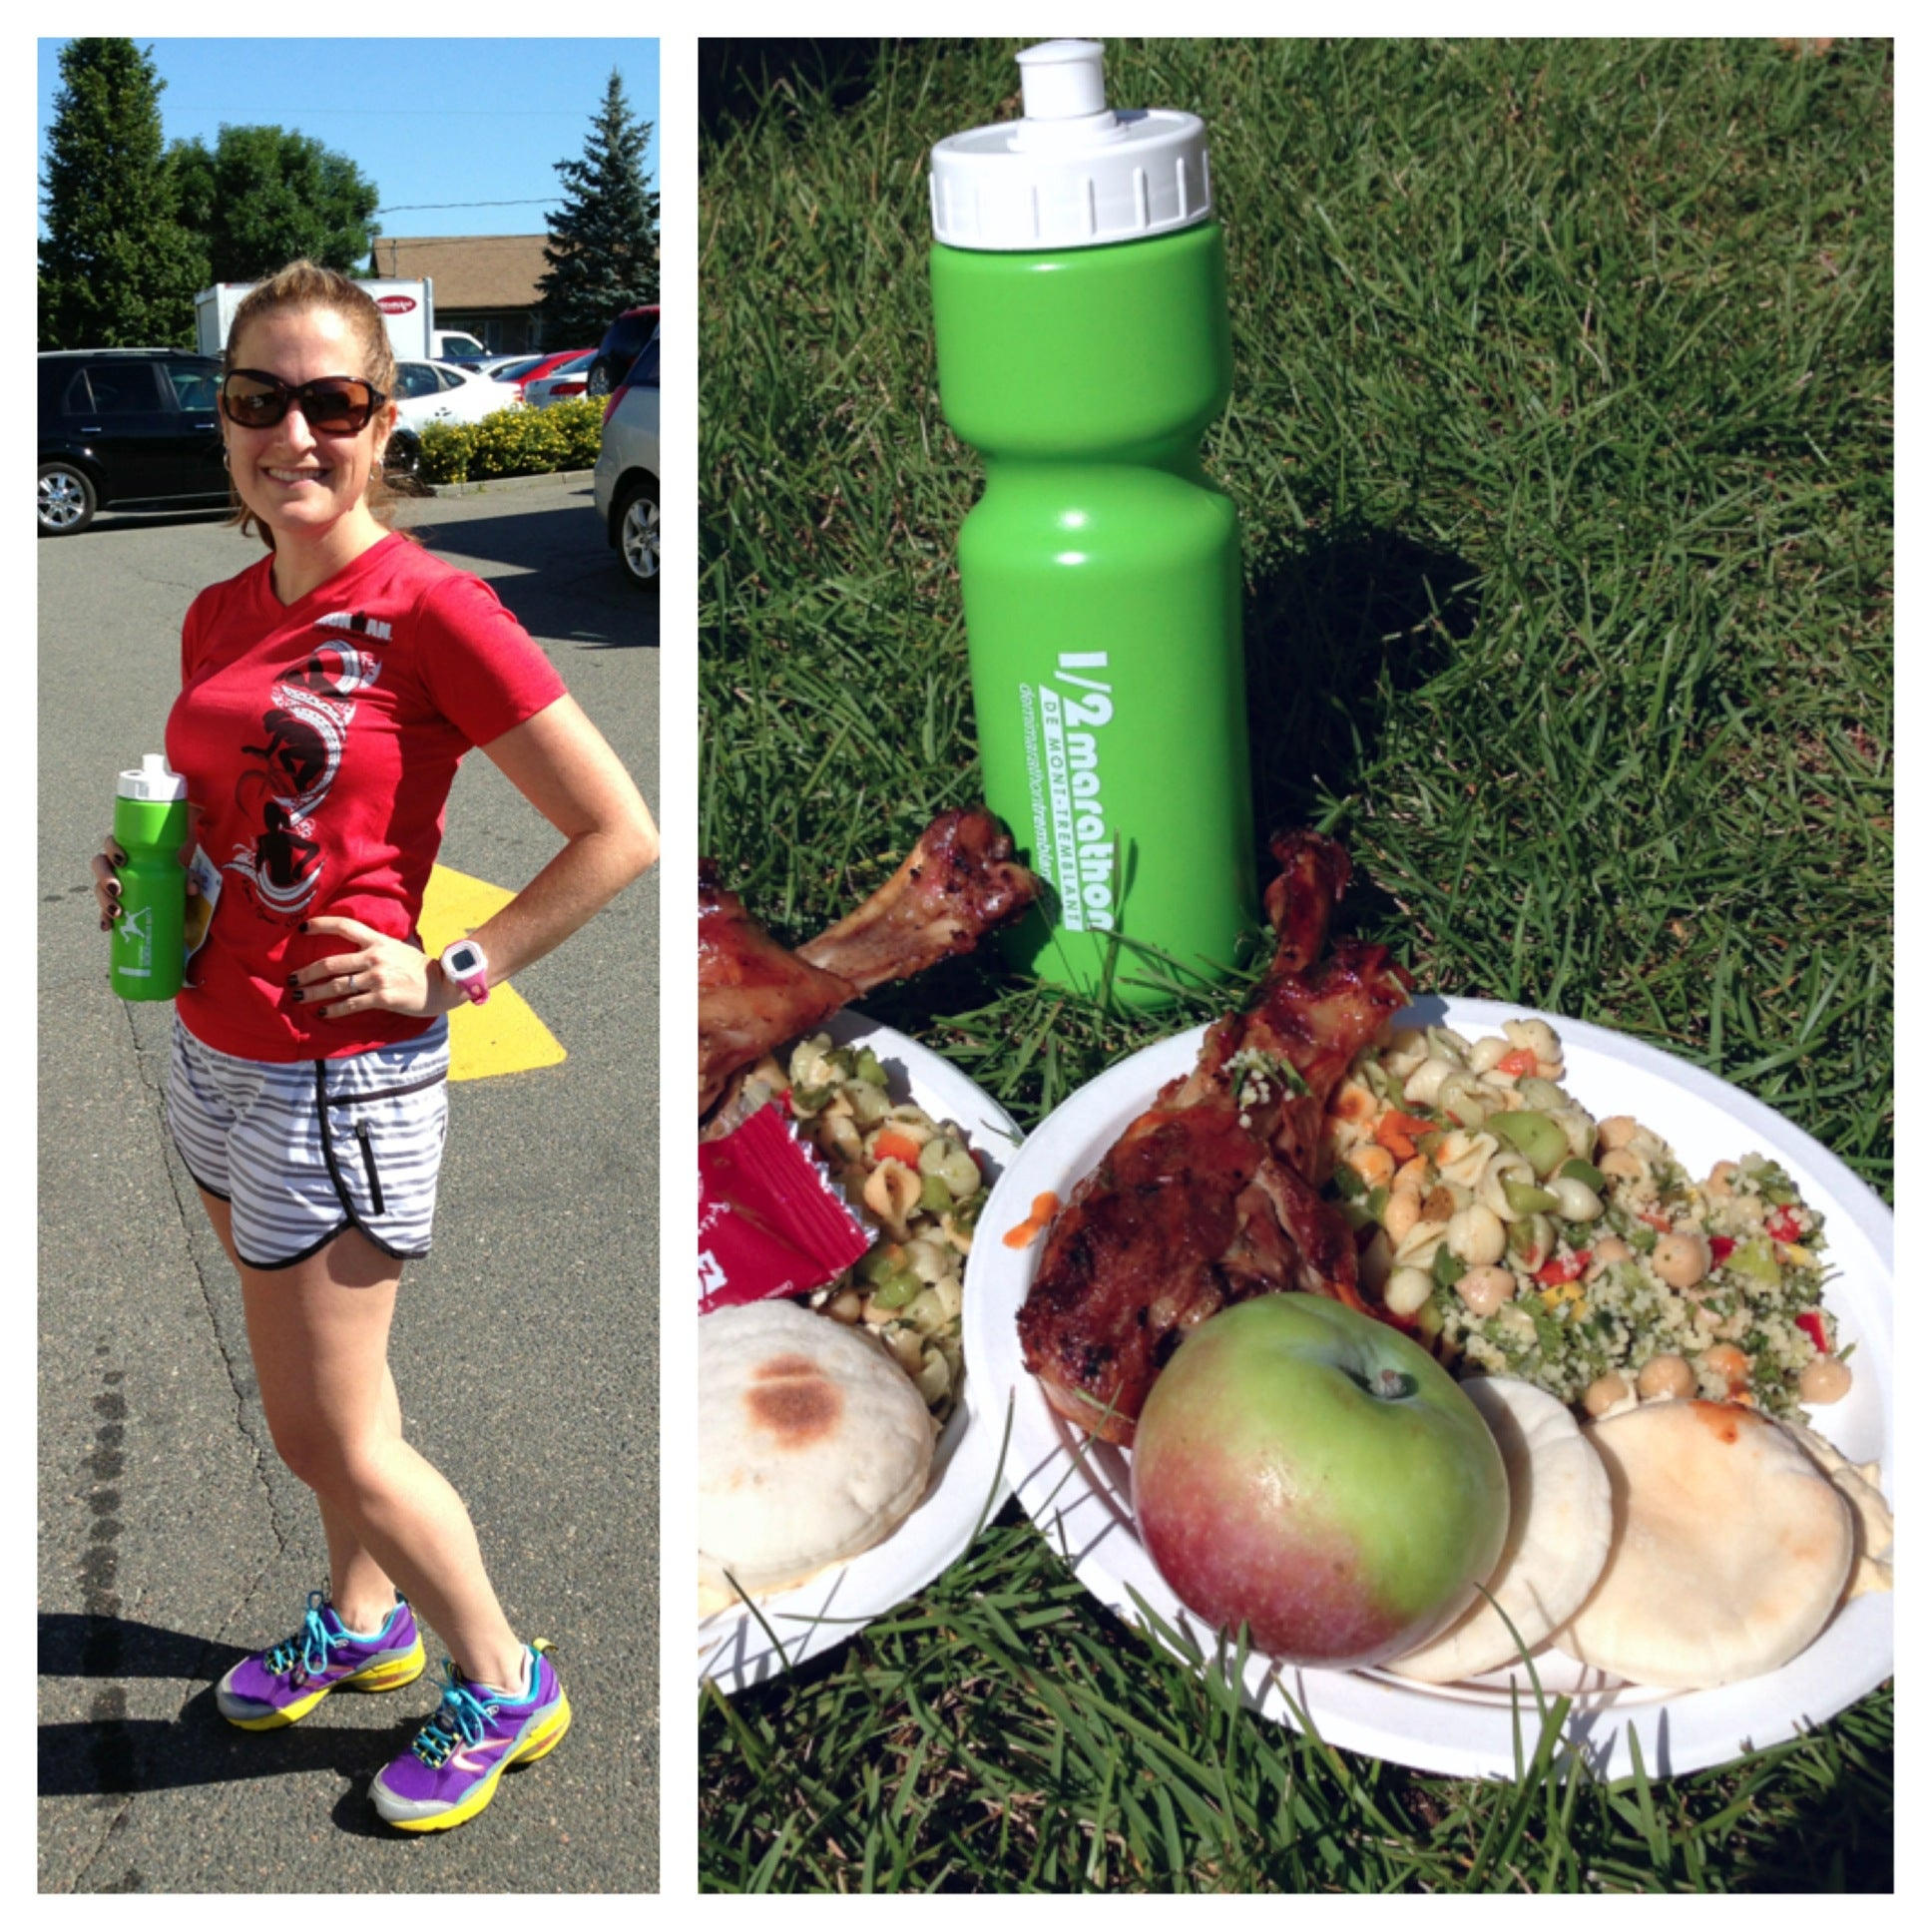 Who wouldn't smile after an amazing race with this post-race fuel?